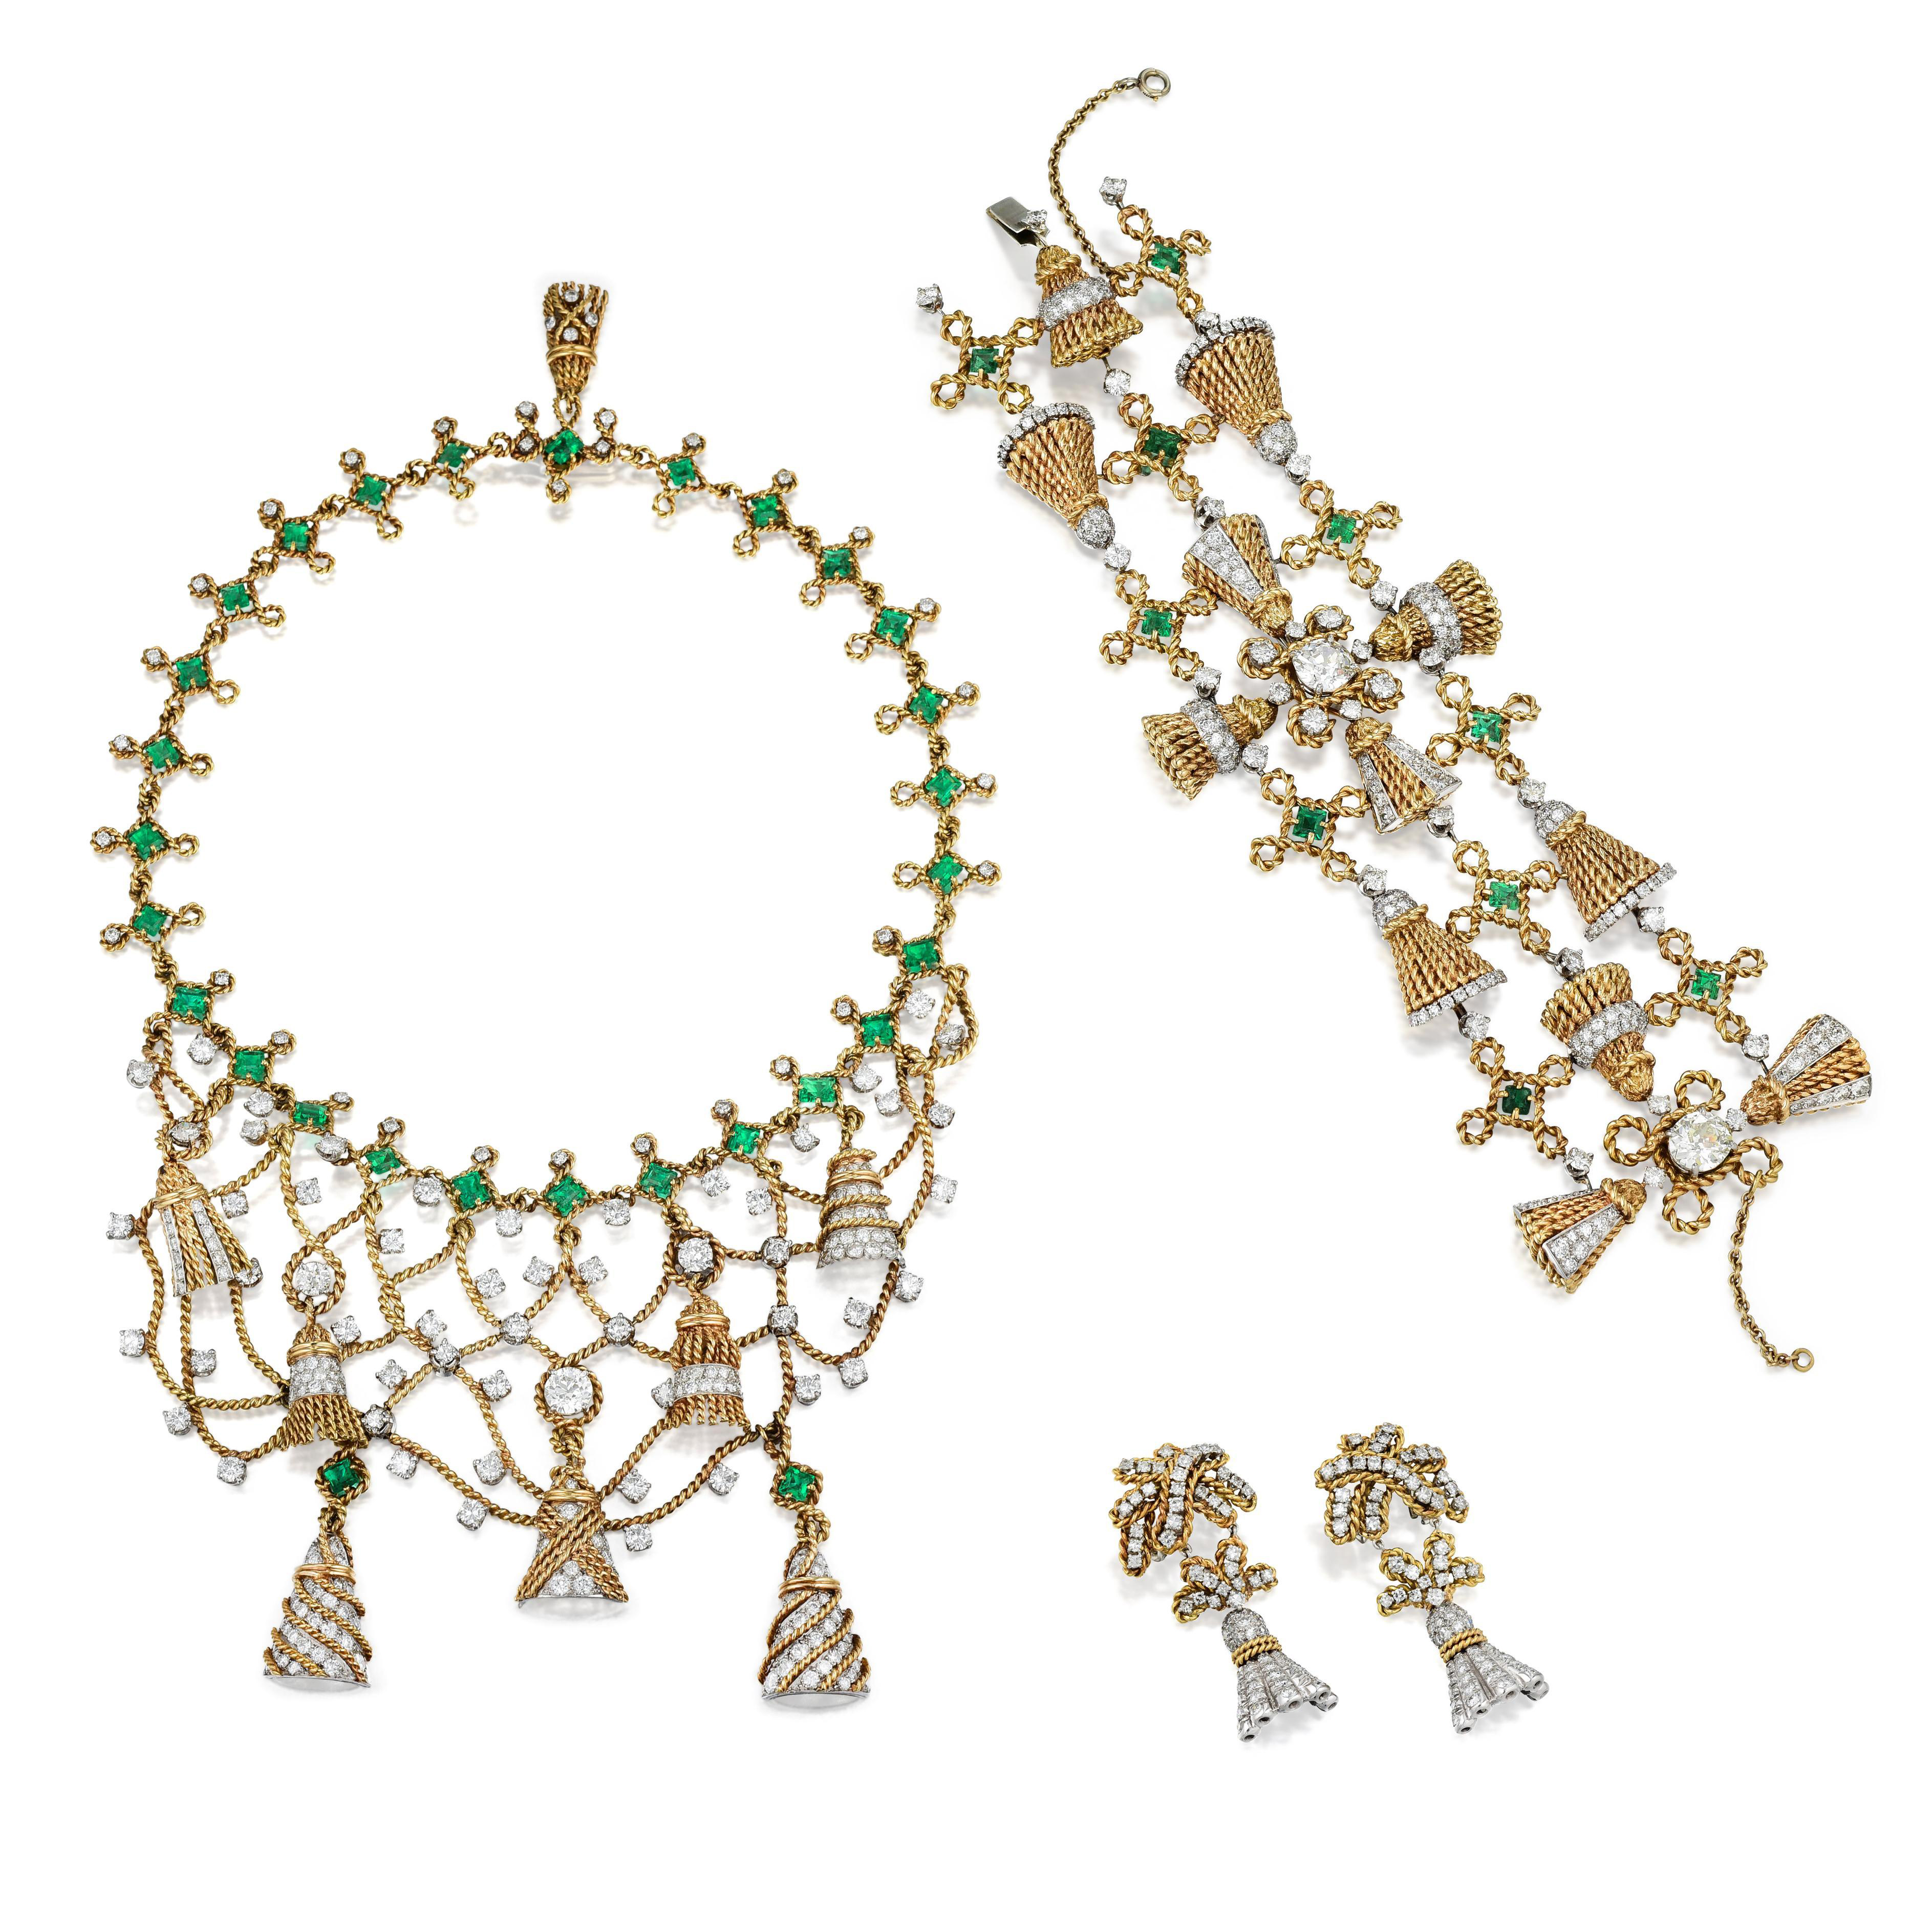 Jewelry suite by Jean Schlumberger.